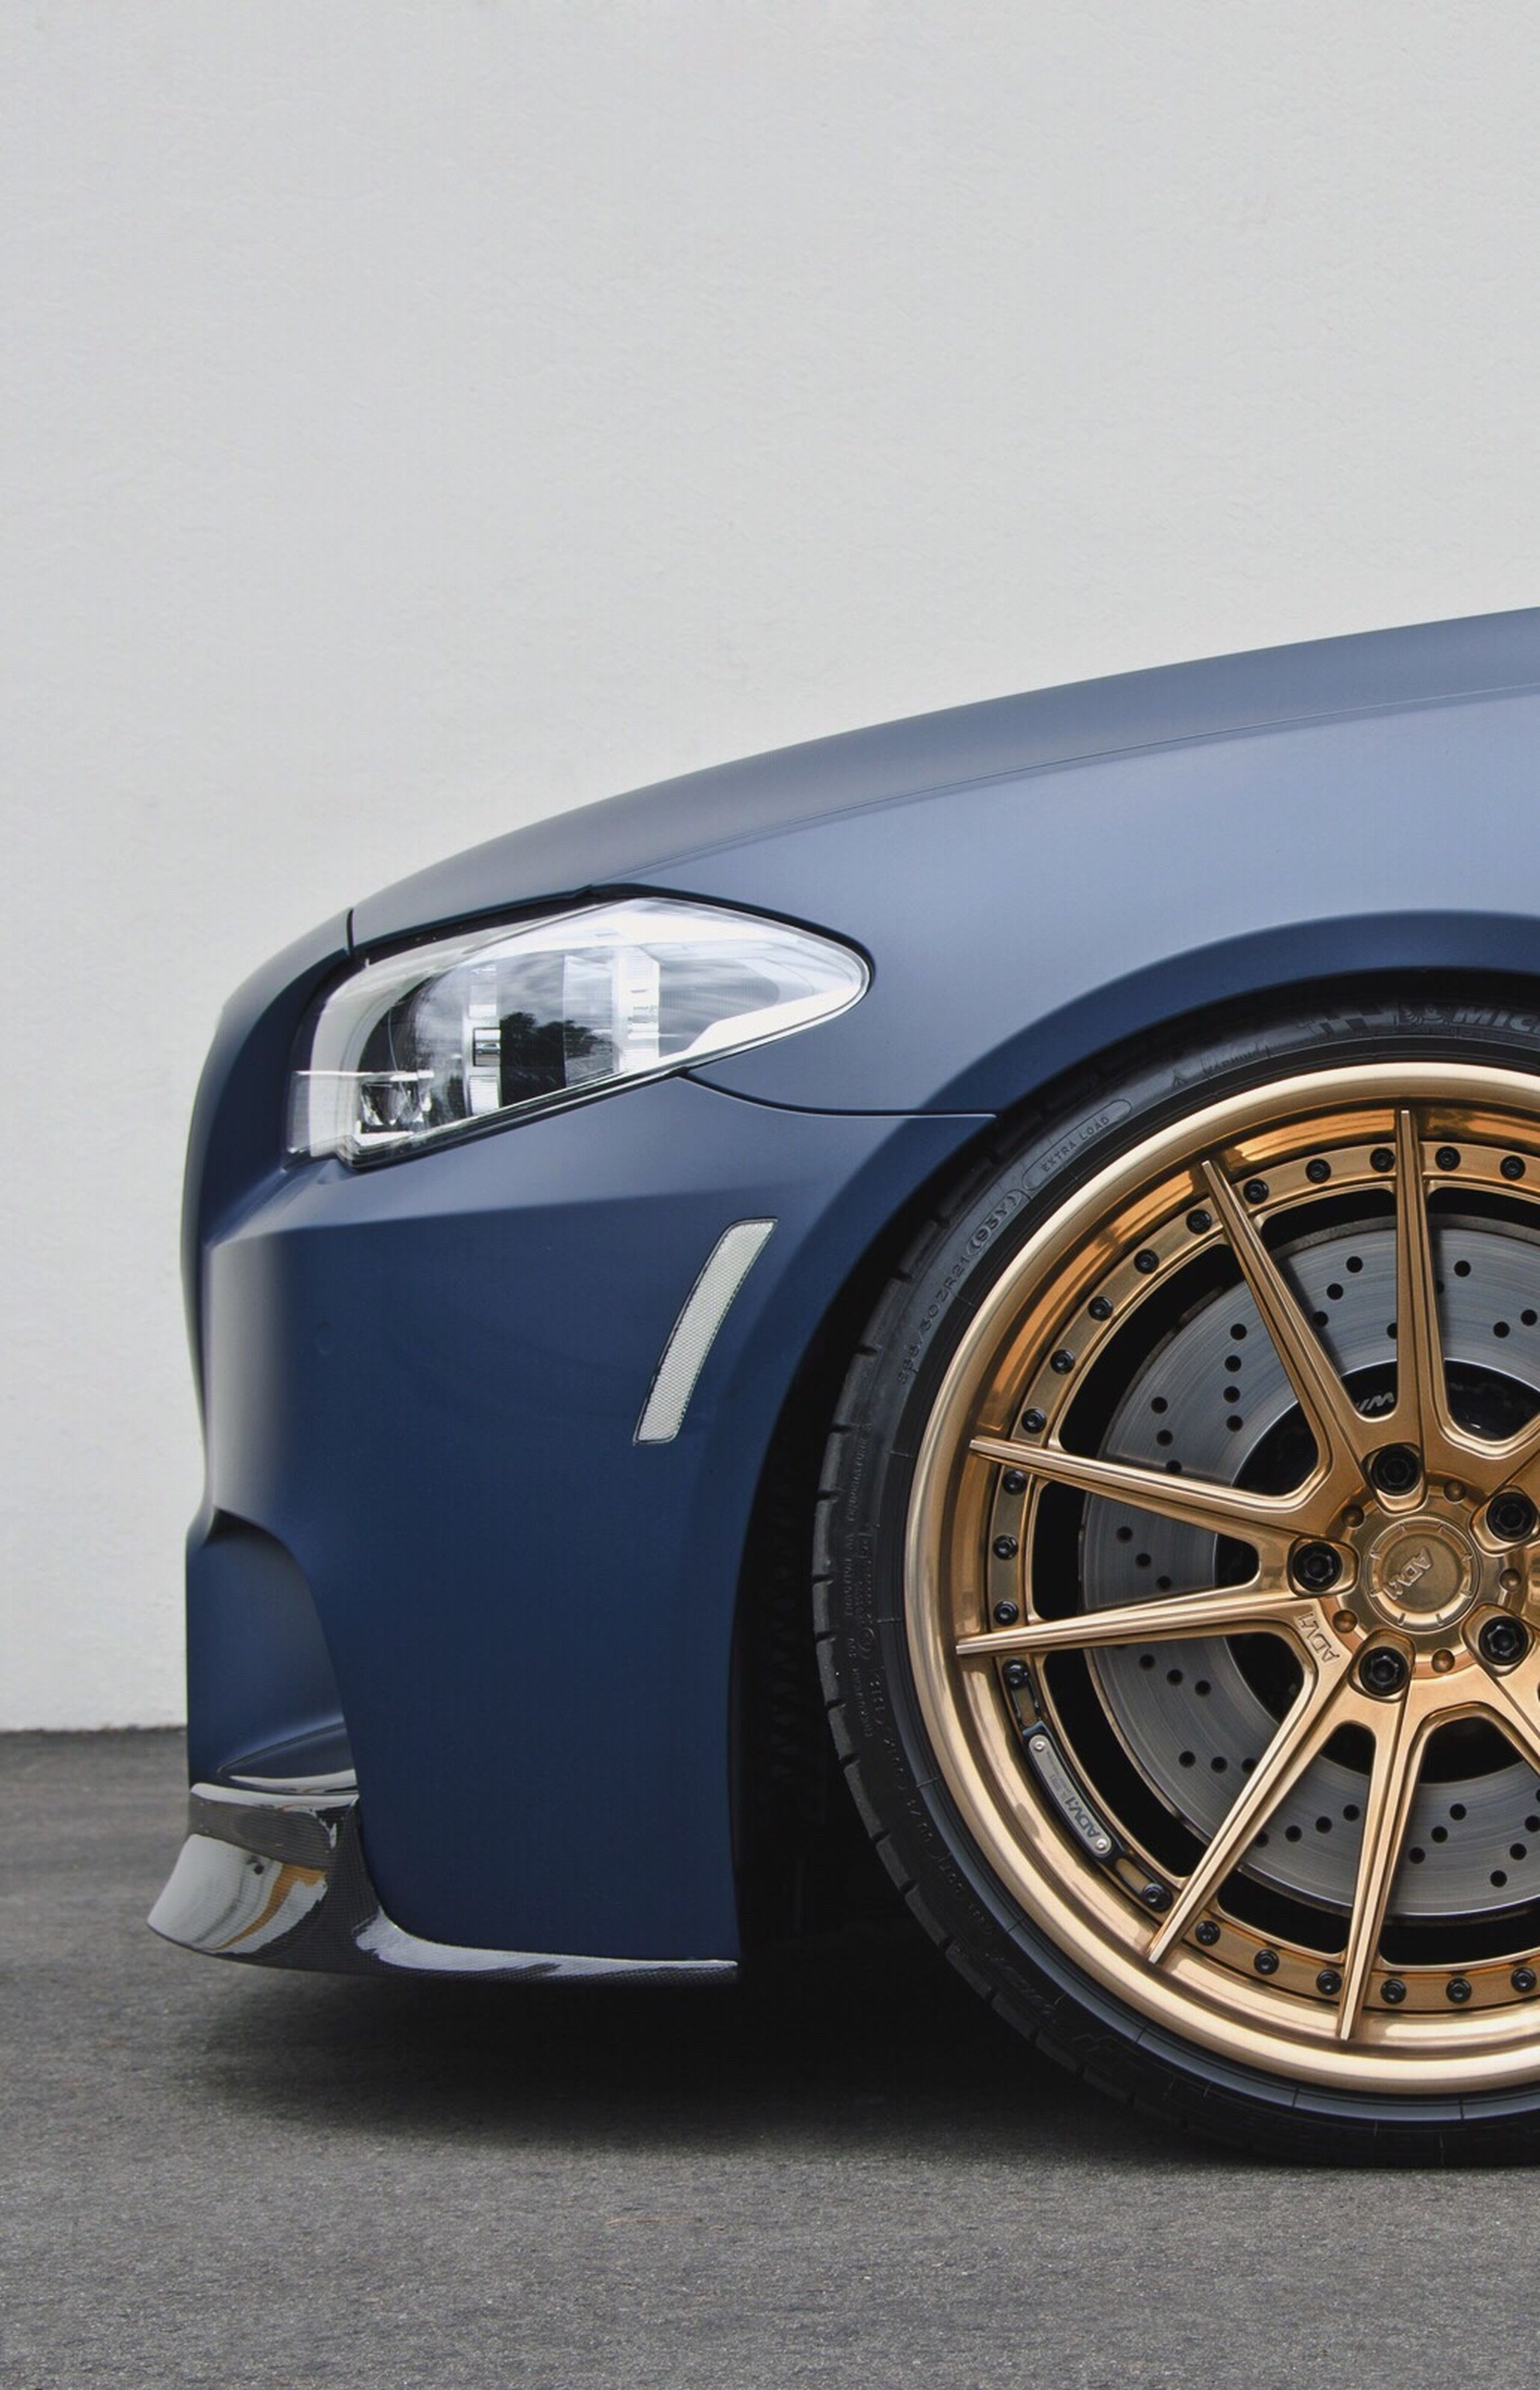 car, transportation, wheel, mode of transport, luxury, no people, close-up, outdoors, day, tire, collector's car